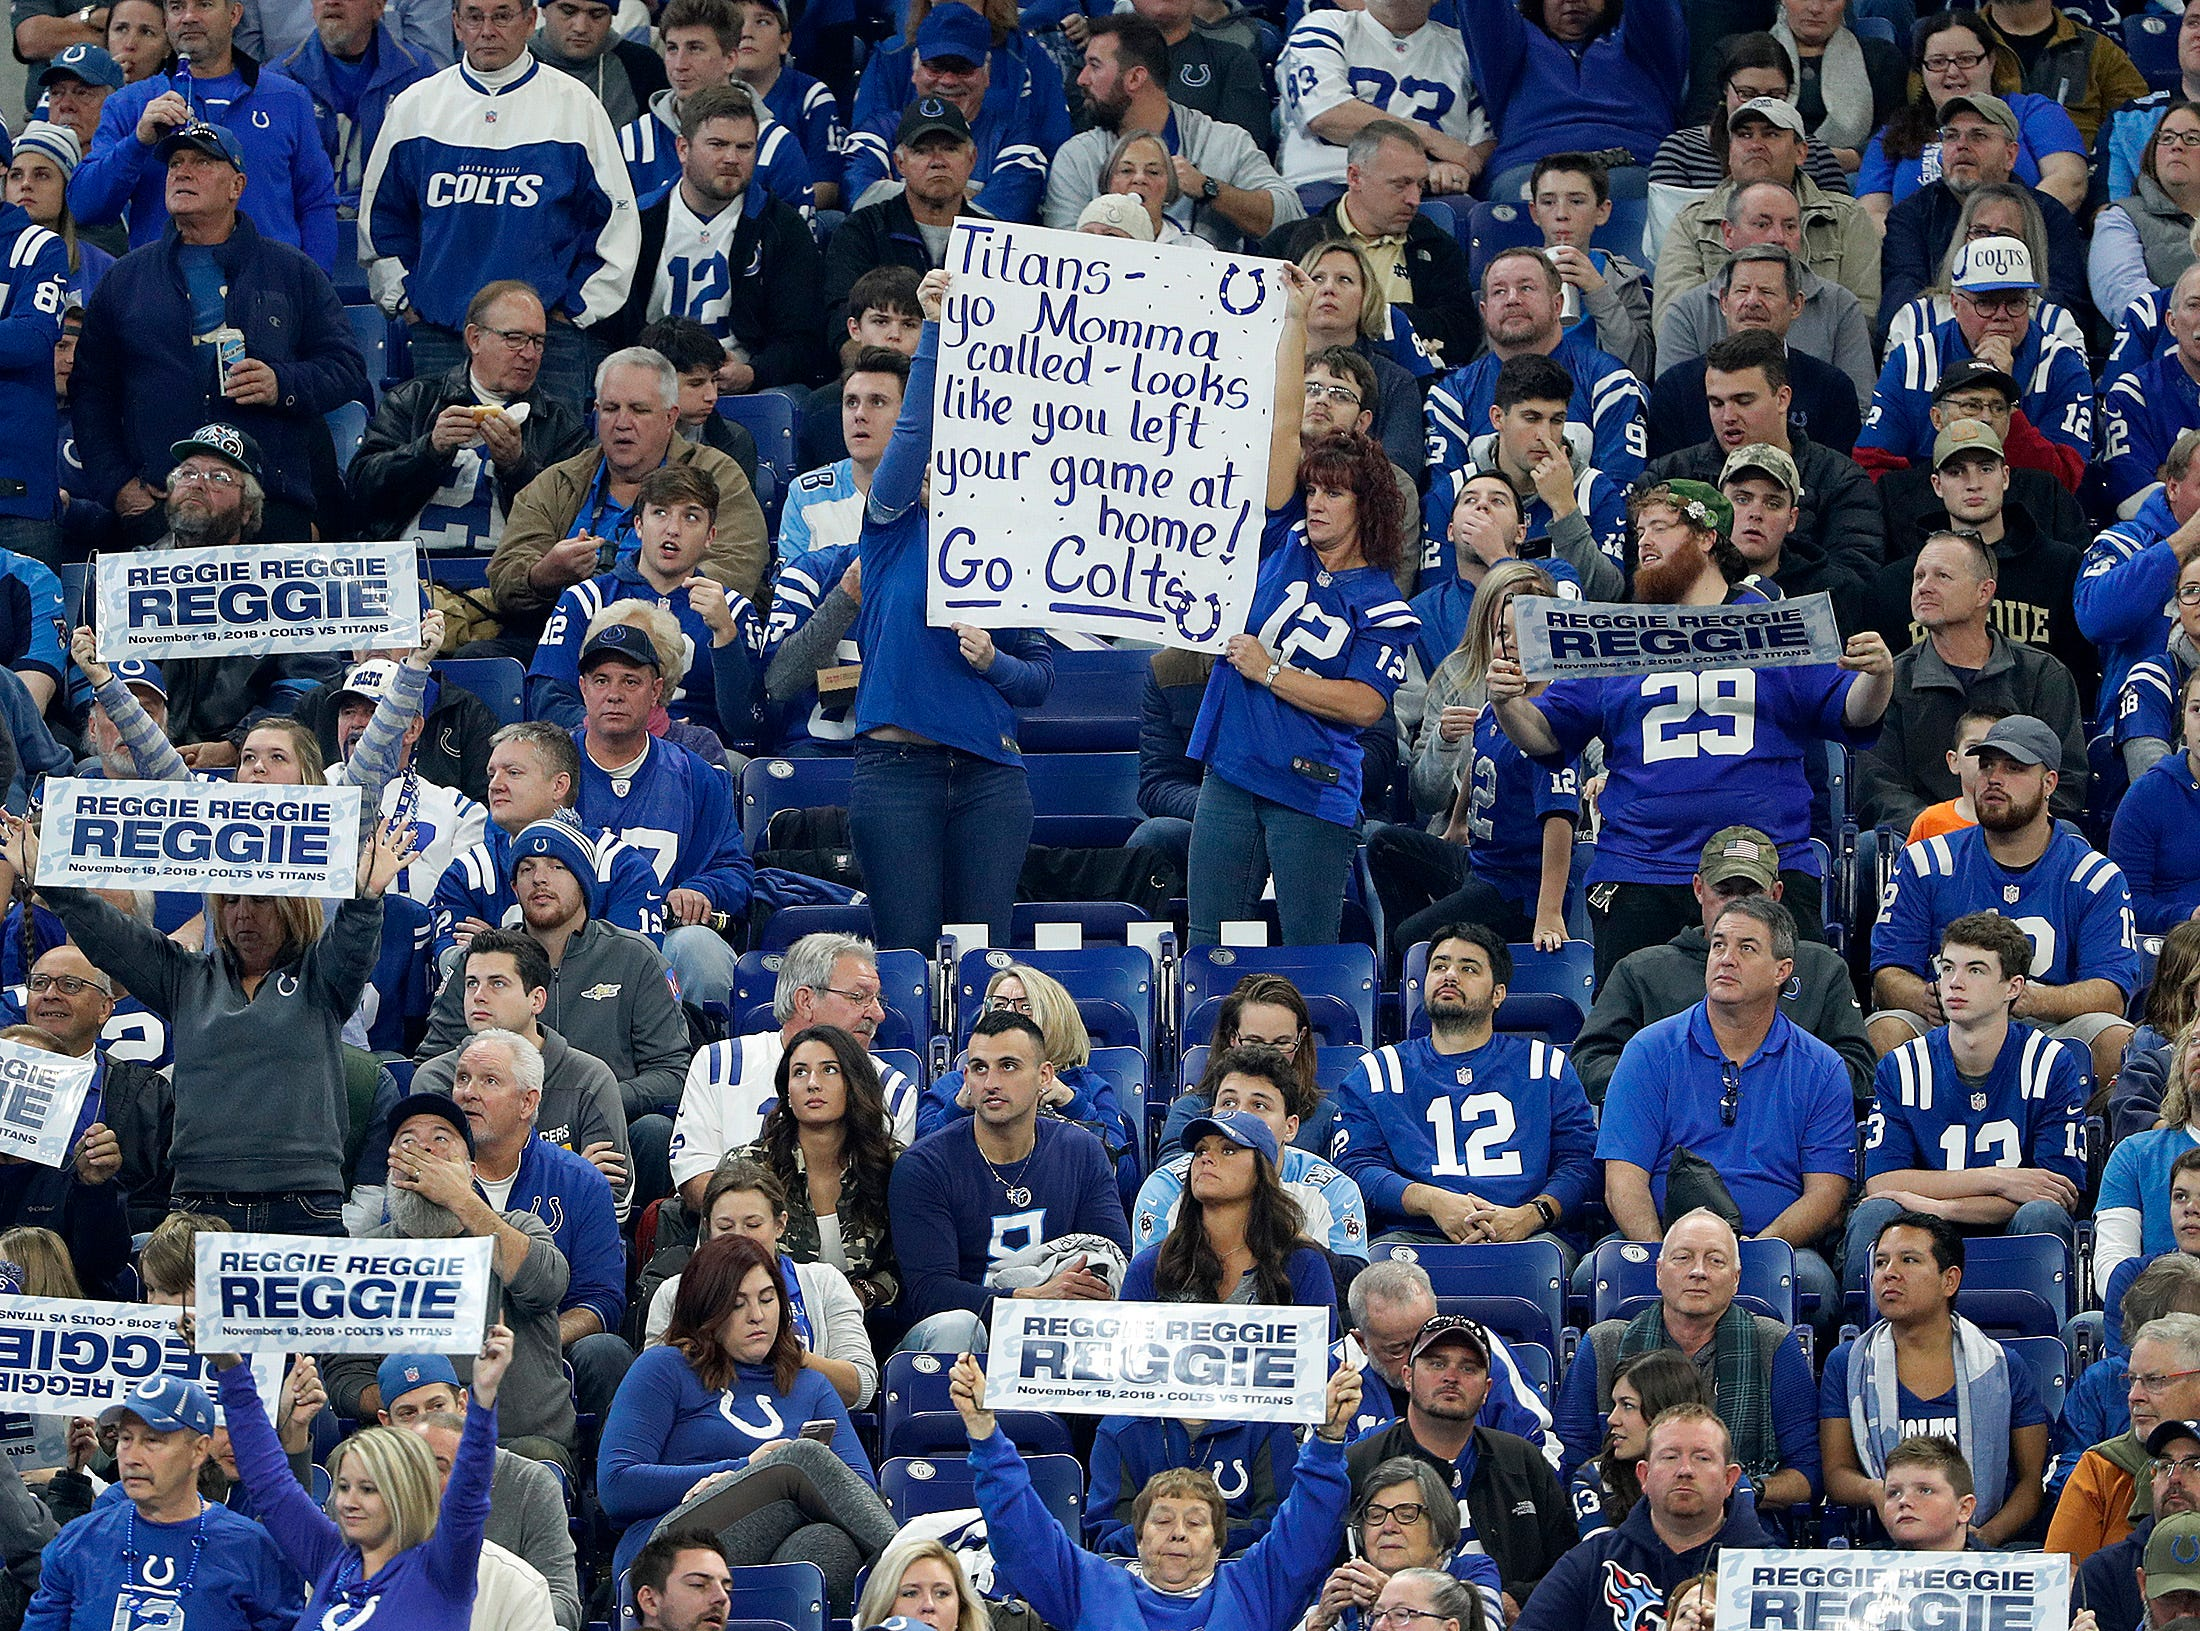 Indianapolis Colts 2020 Attendance Guidelines For Lucas Oil Stadium